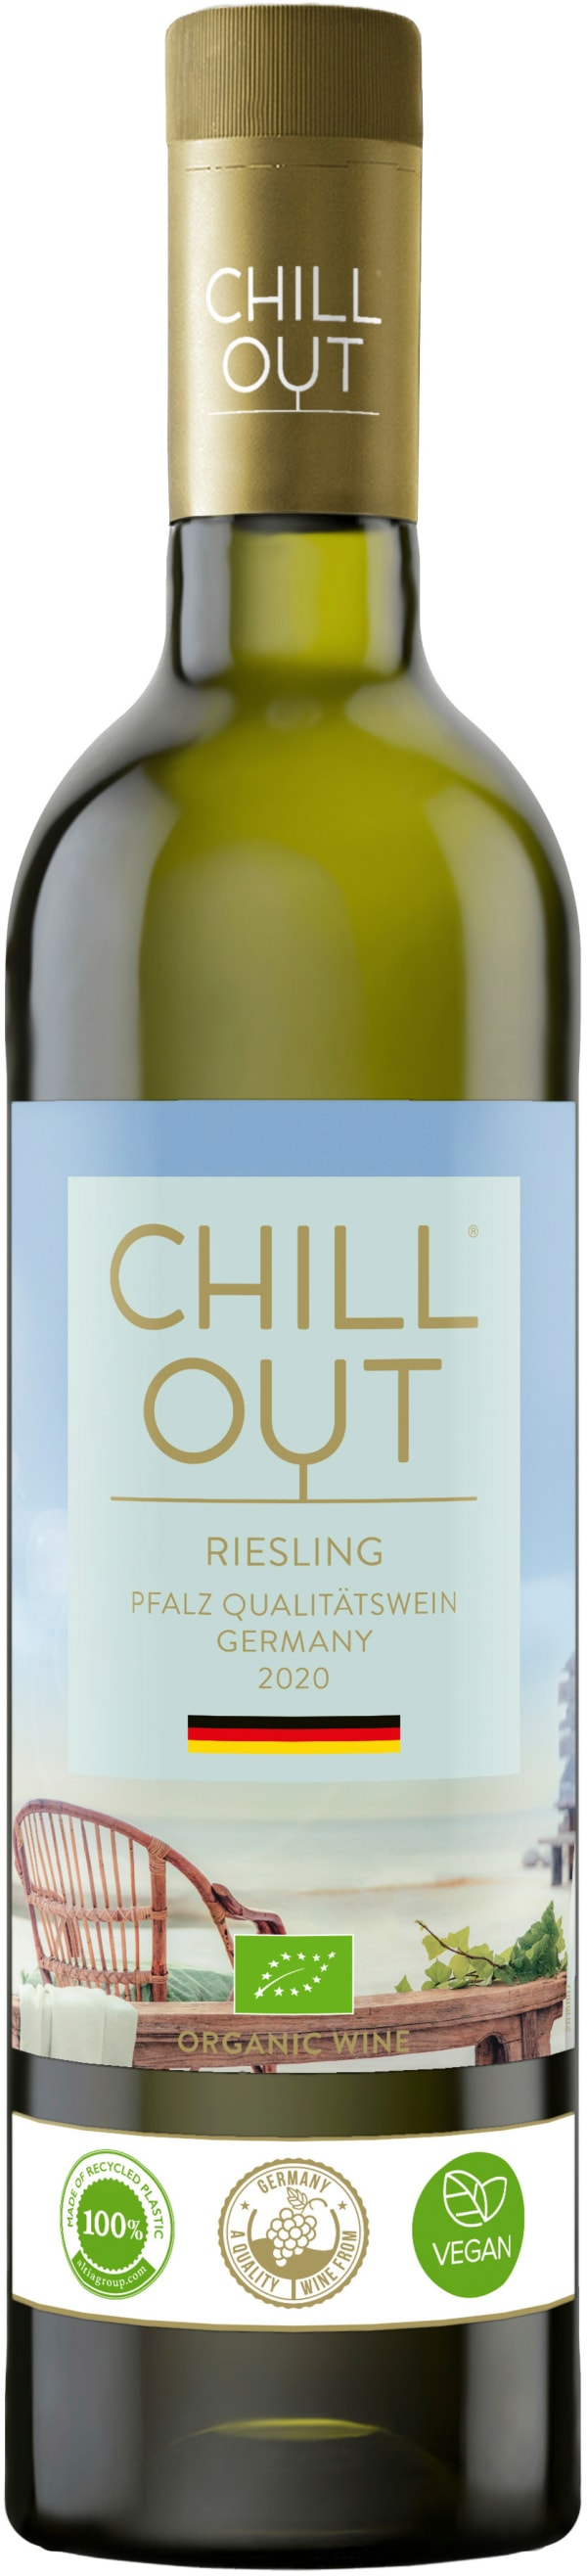 Chill Out Riesling 2018 plastic bottle